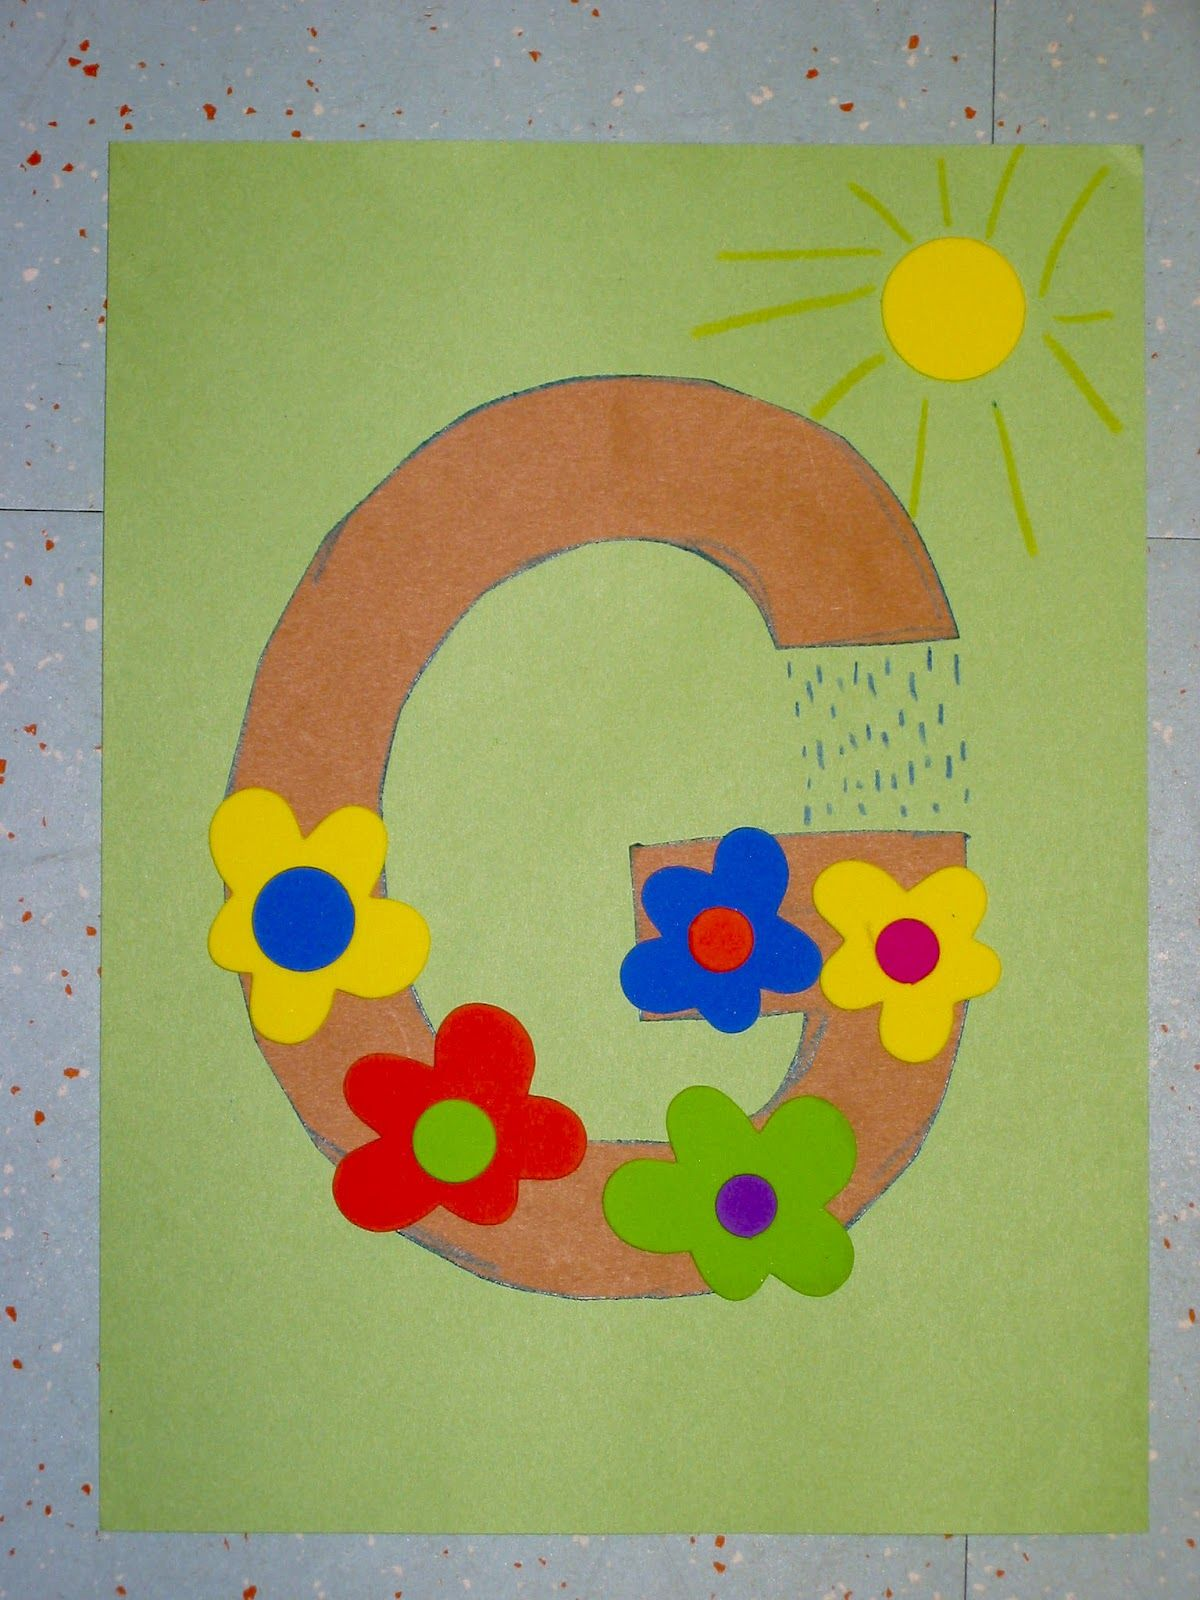 Letter s arts and crafts for preschoolers - Activities For The Letter G Preschool Google Search G Is For Garden Garden